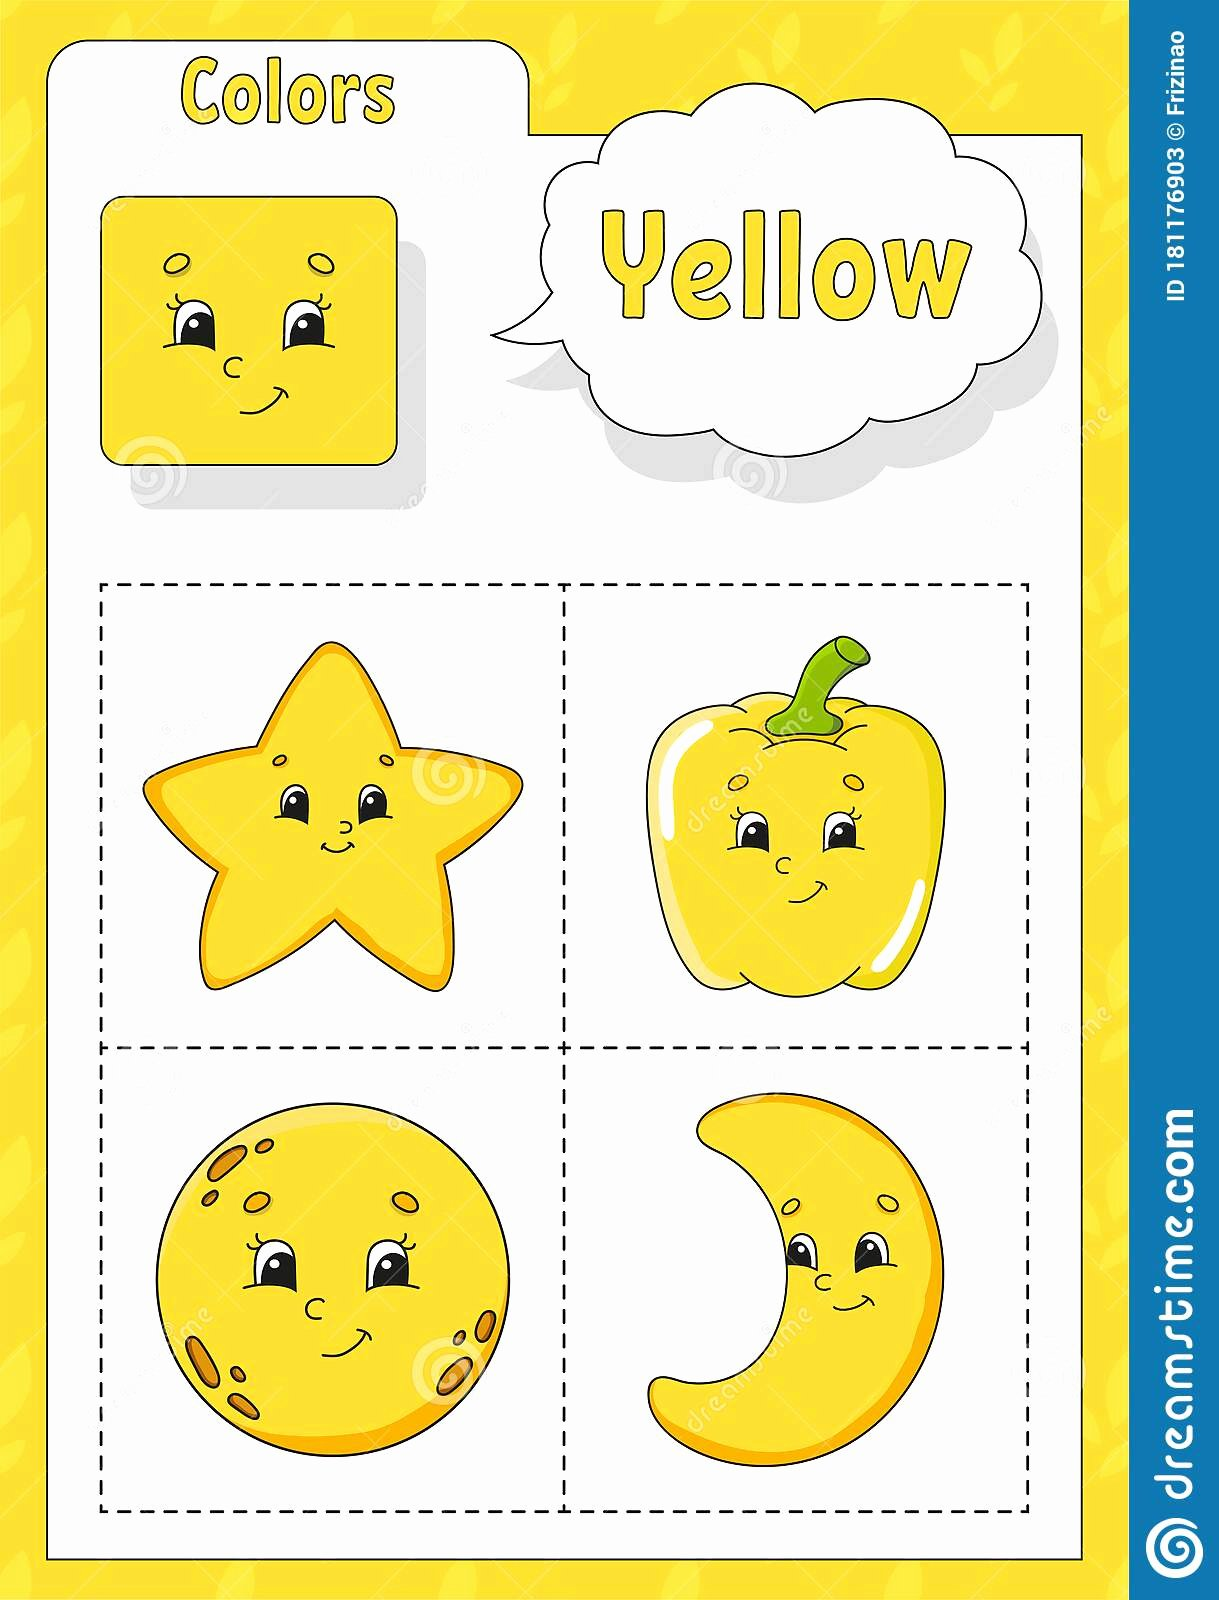 Color Yellow Worksheets for Preschoolers Fresh Learning Colors Yellow Color Flashcard for Kids Cute